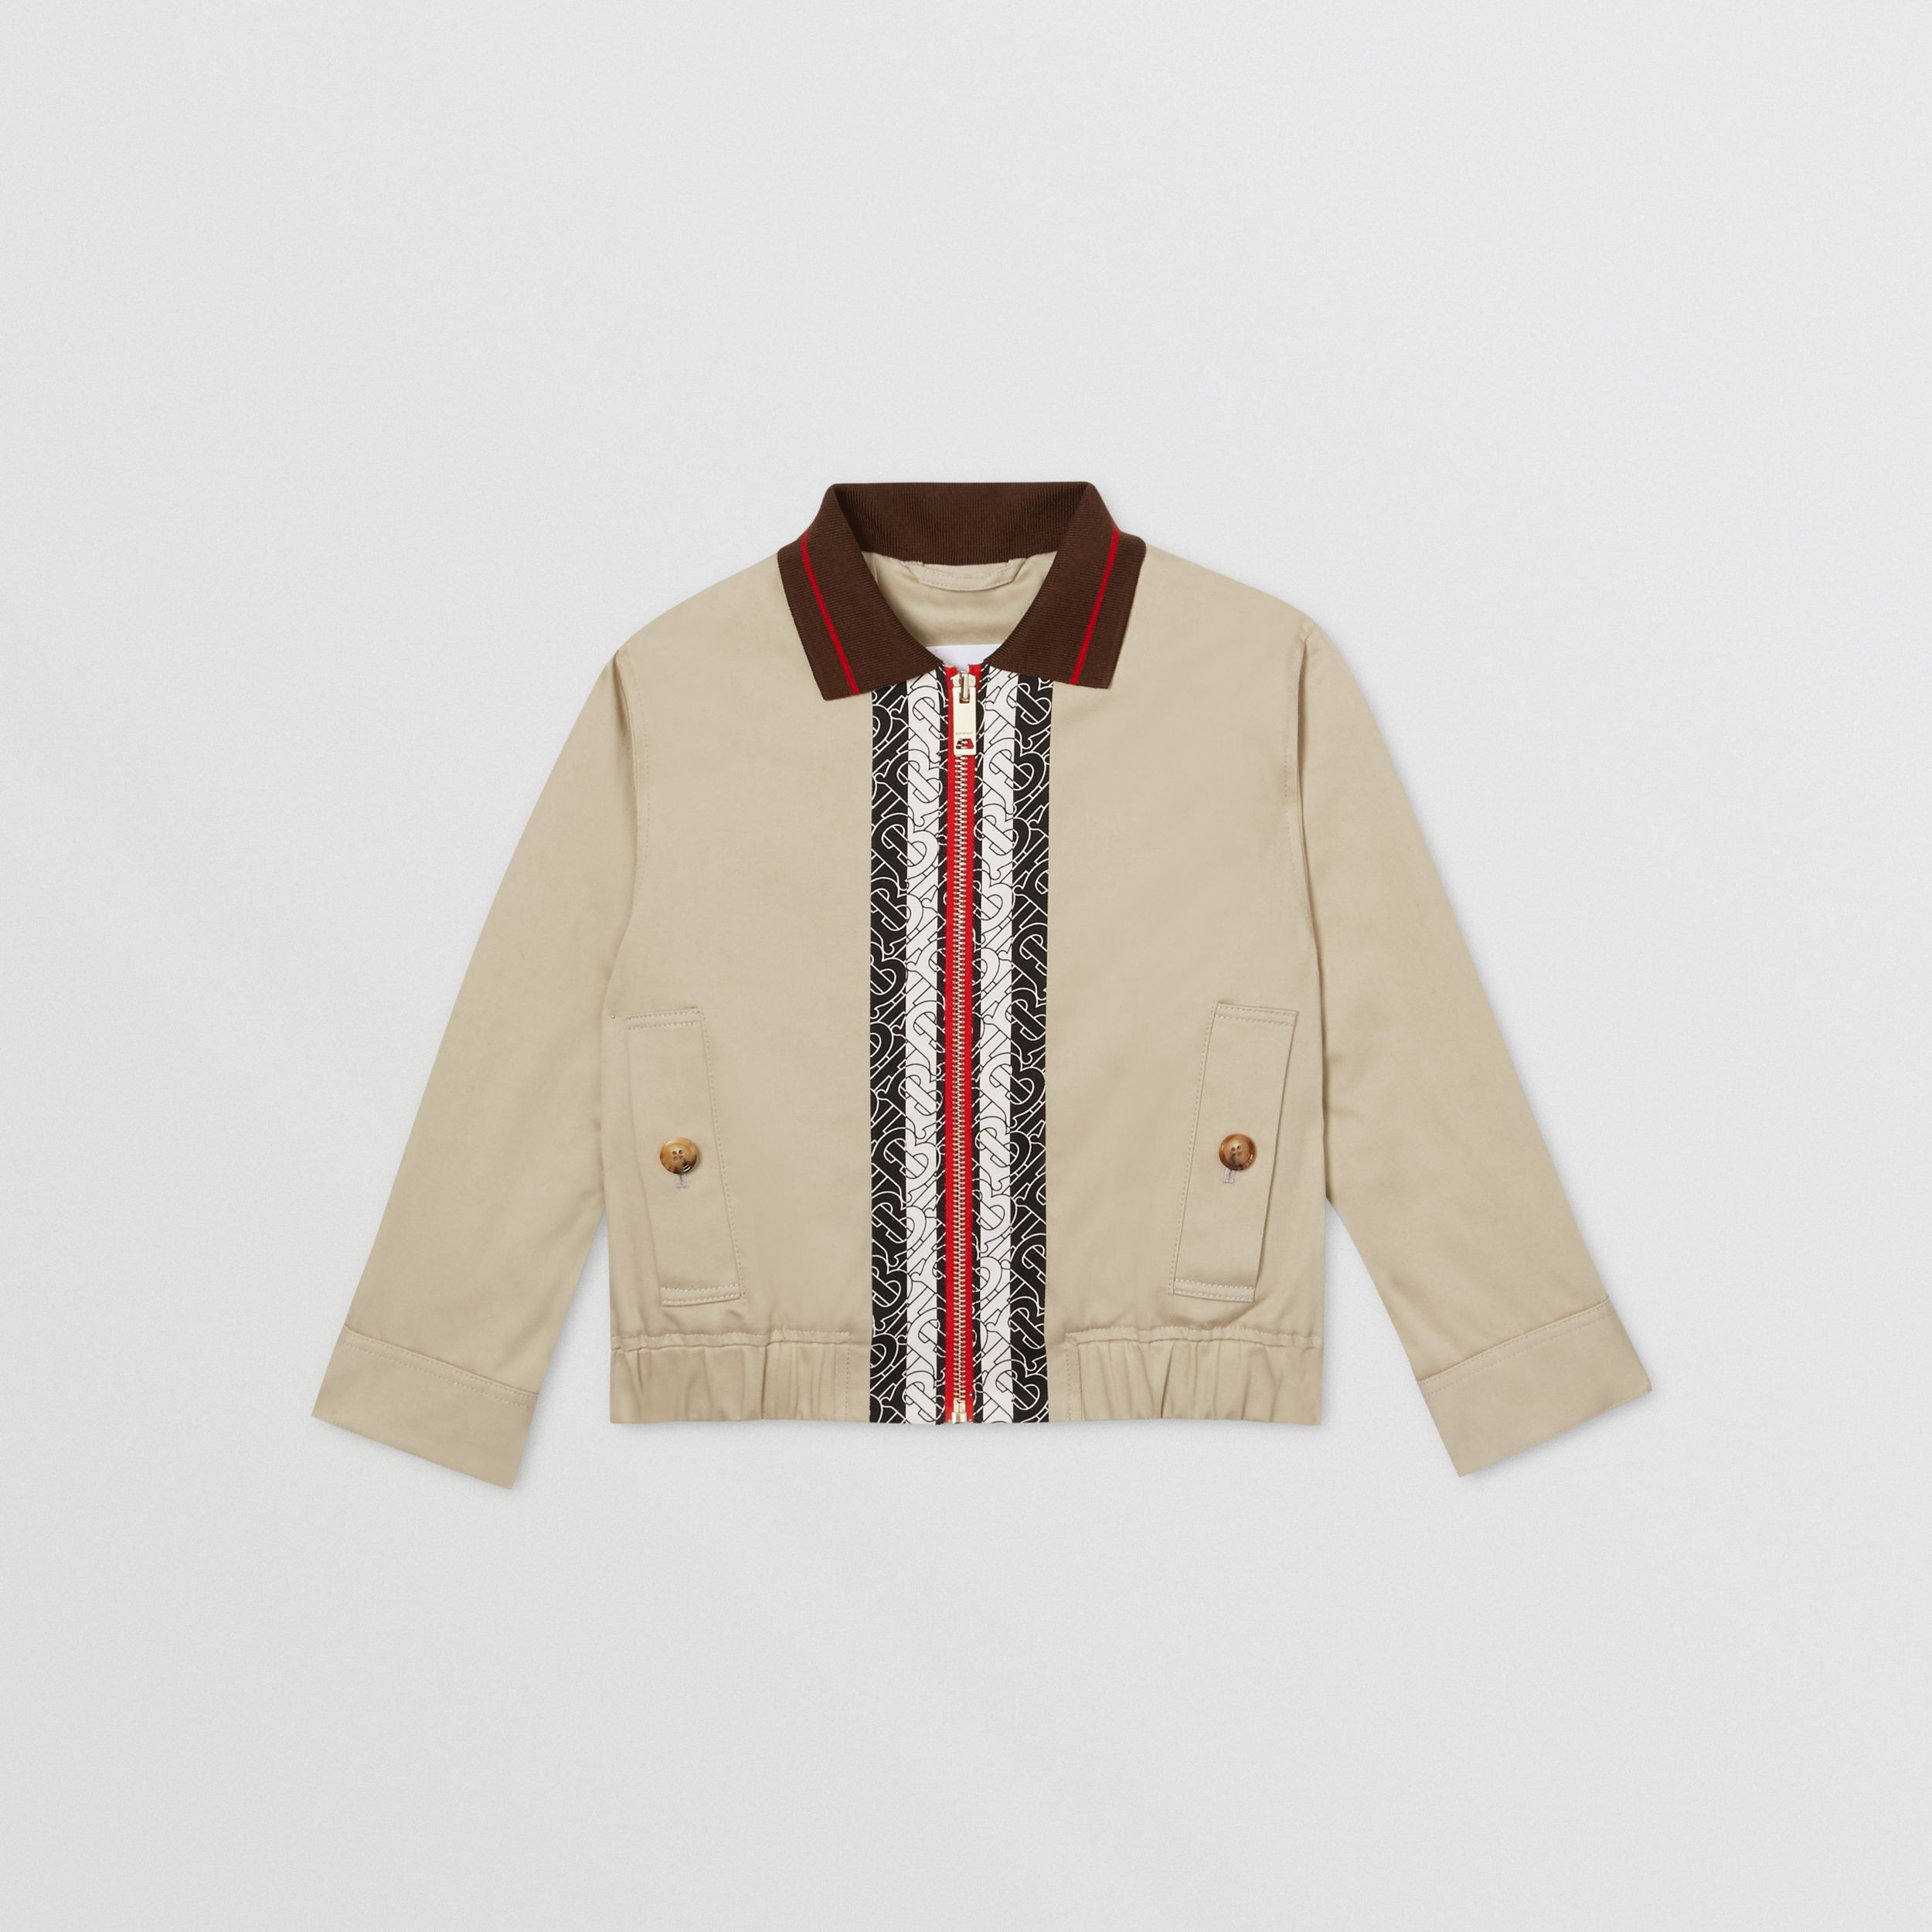 Monogram Stripe Print Cotton Harrington Jacket in Stone | Burberry Australia - 1